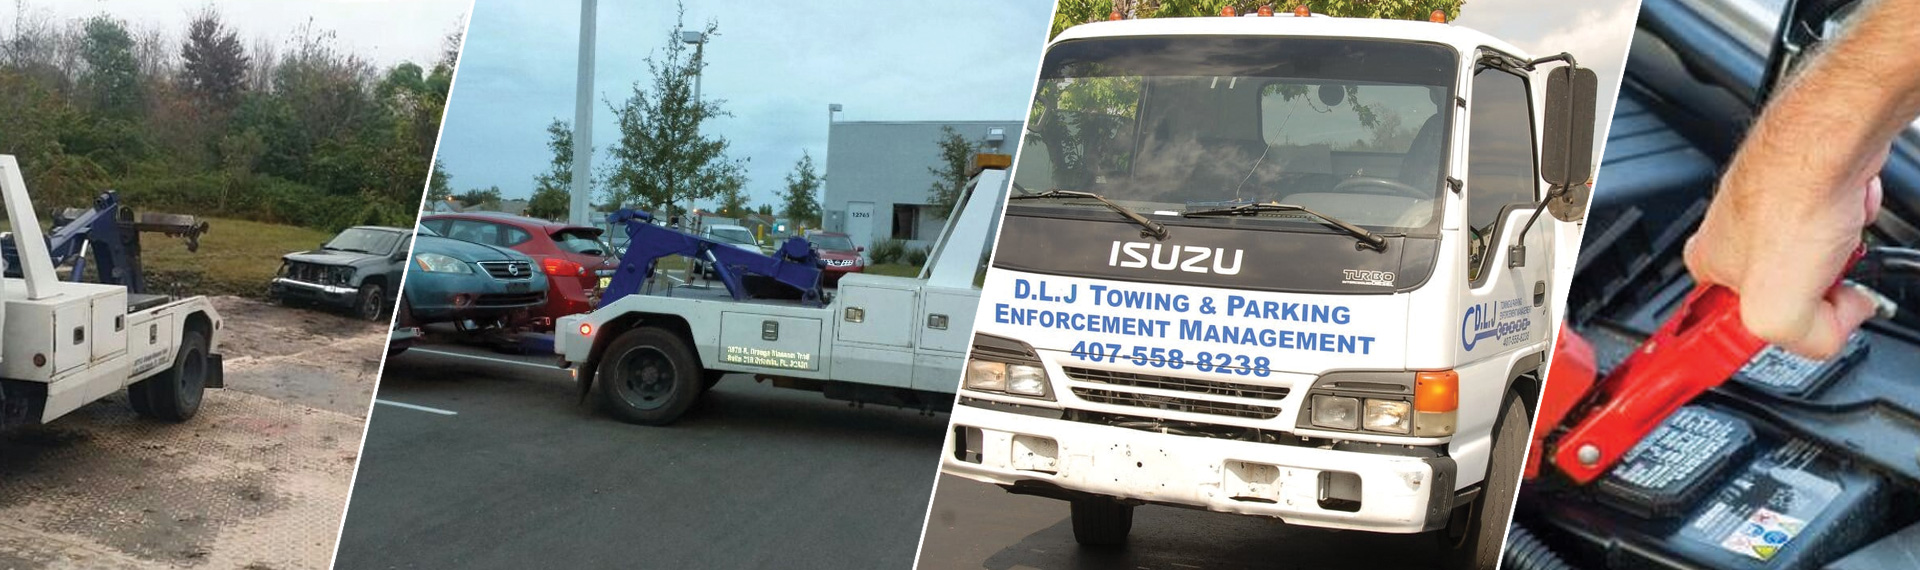 DLJ Towing & Roadside Assistance Maitland FL